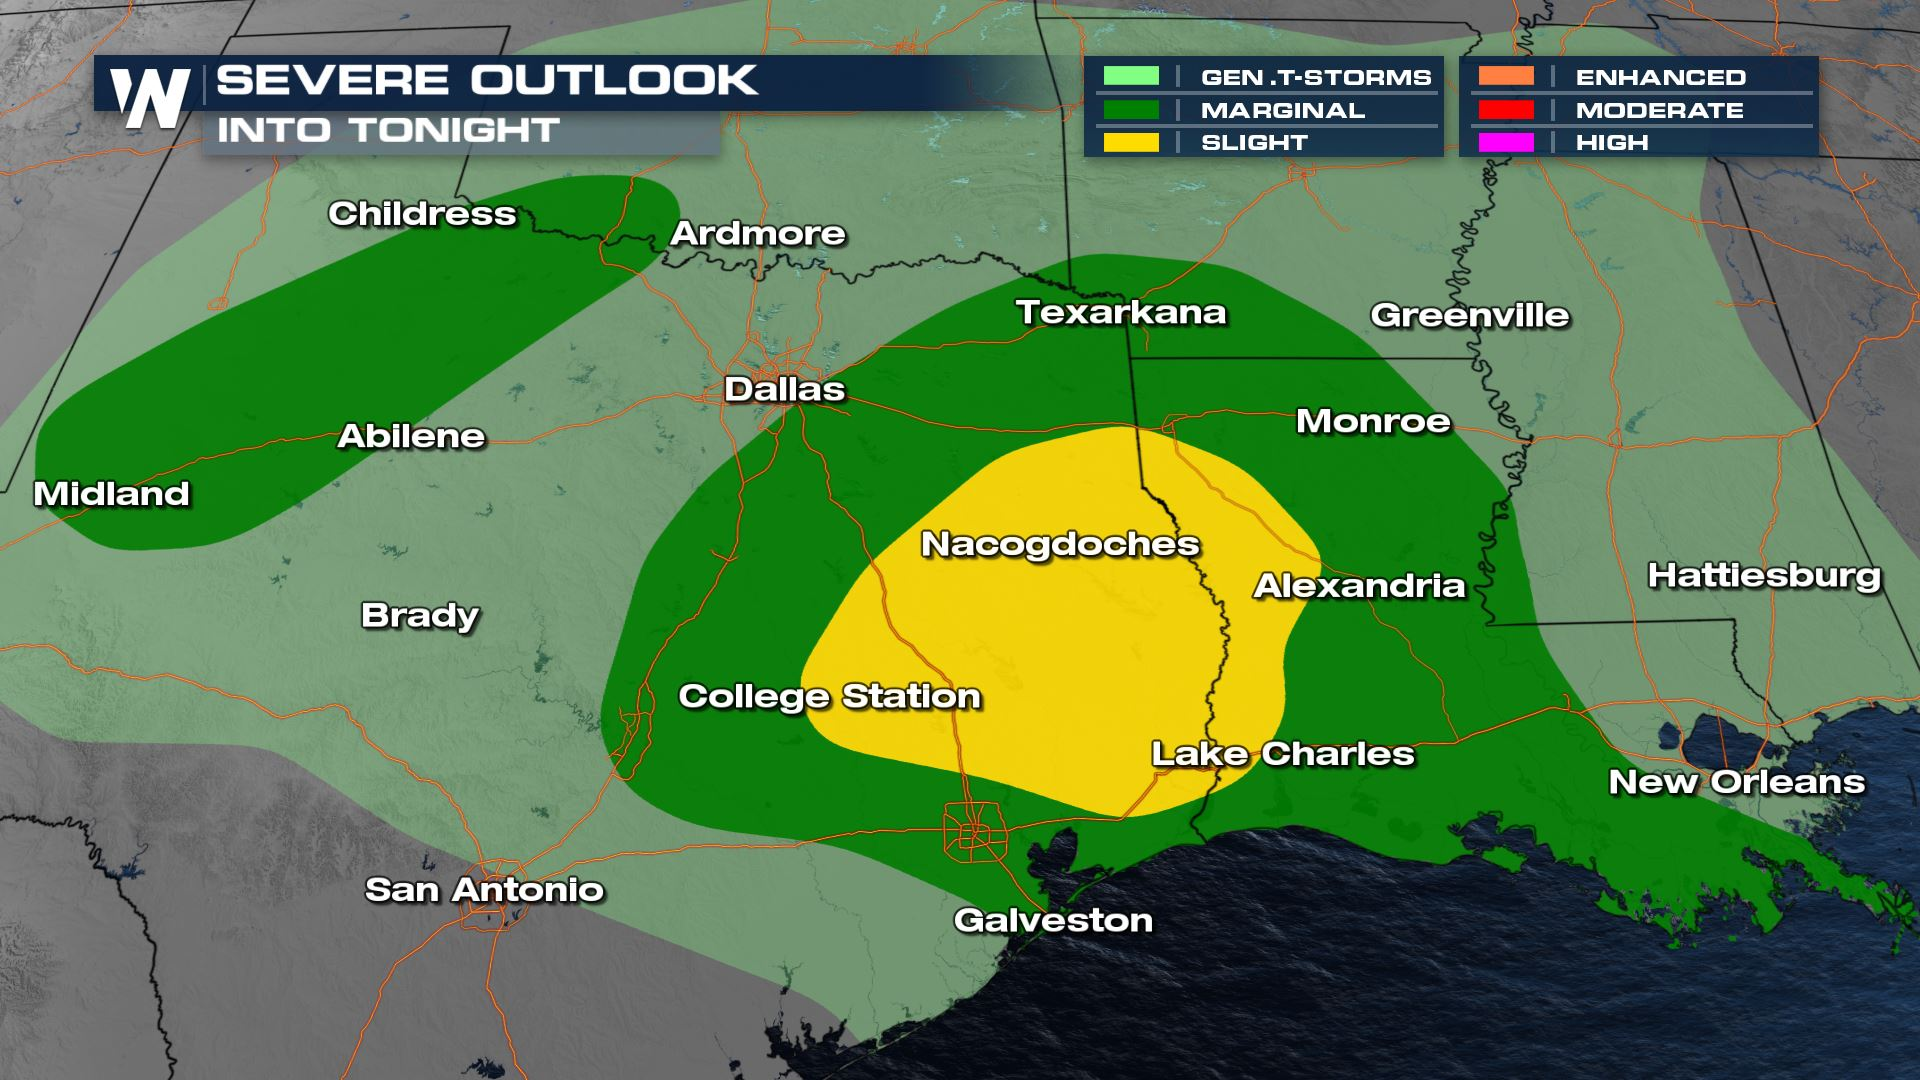 Severe Storms Tuesday and Wednesday from Texas to Louisiana